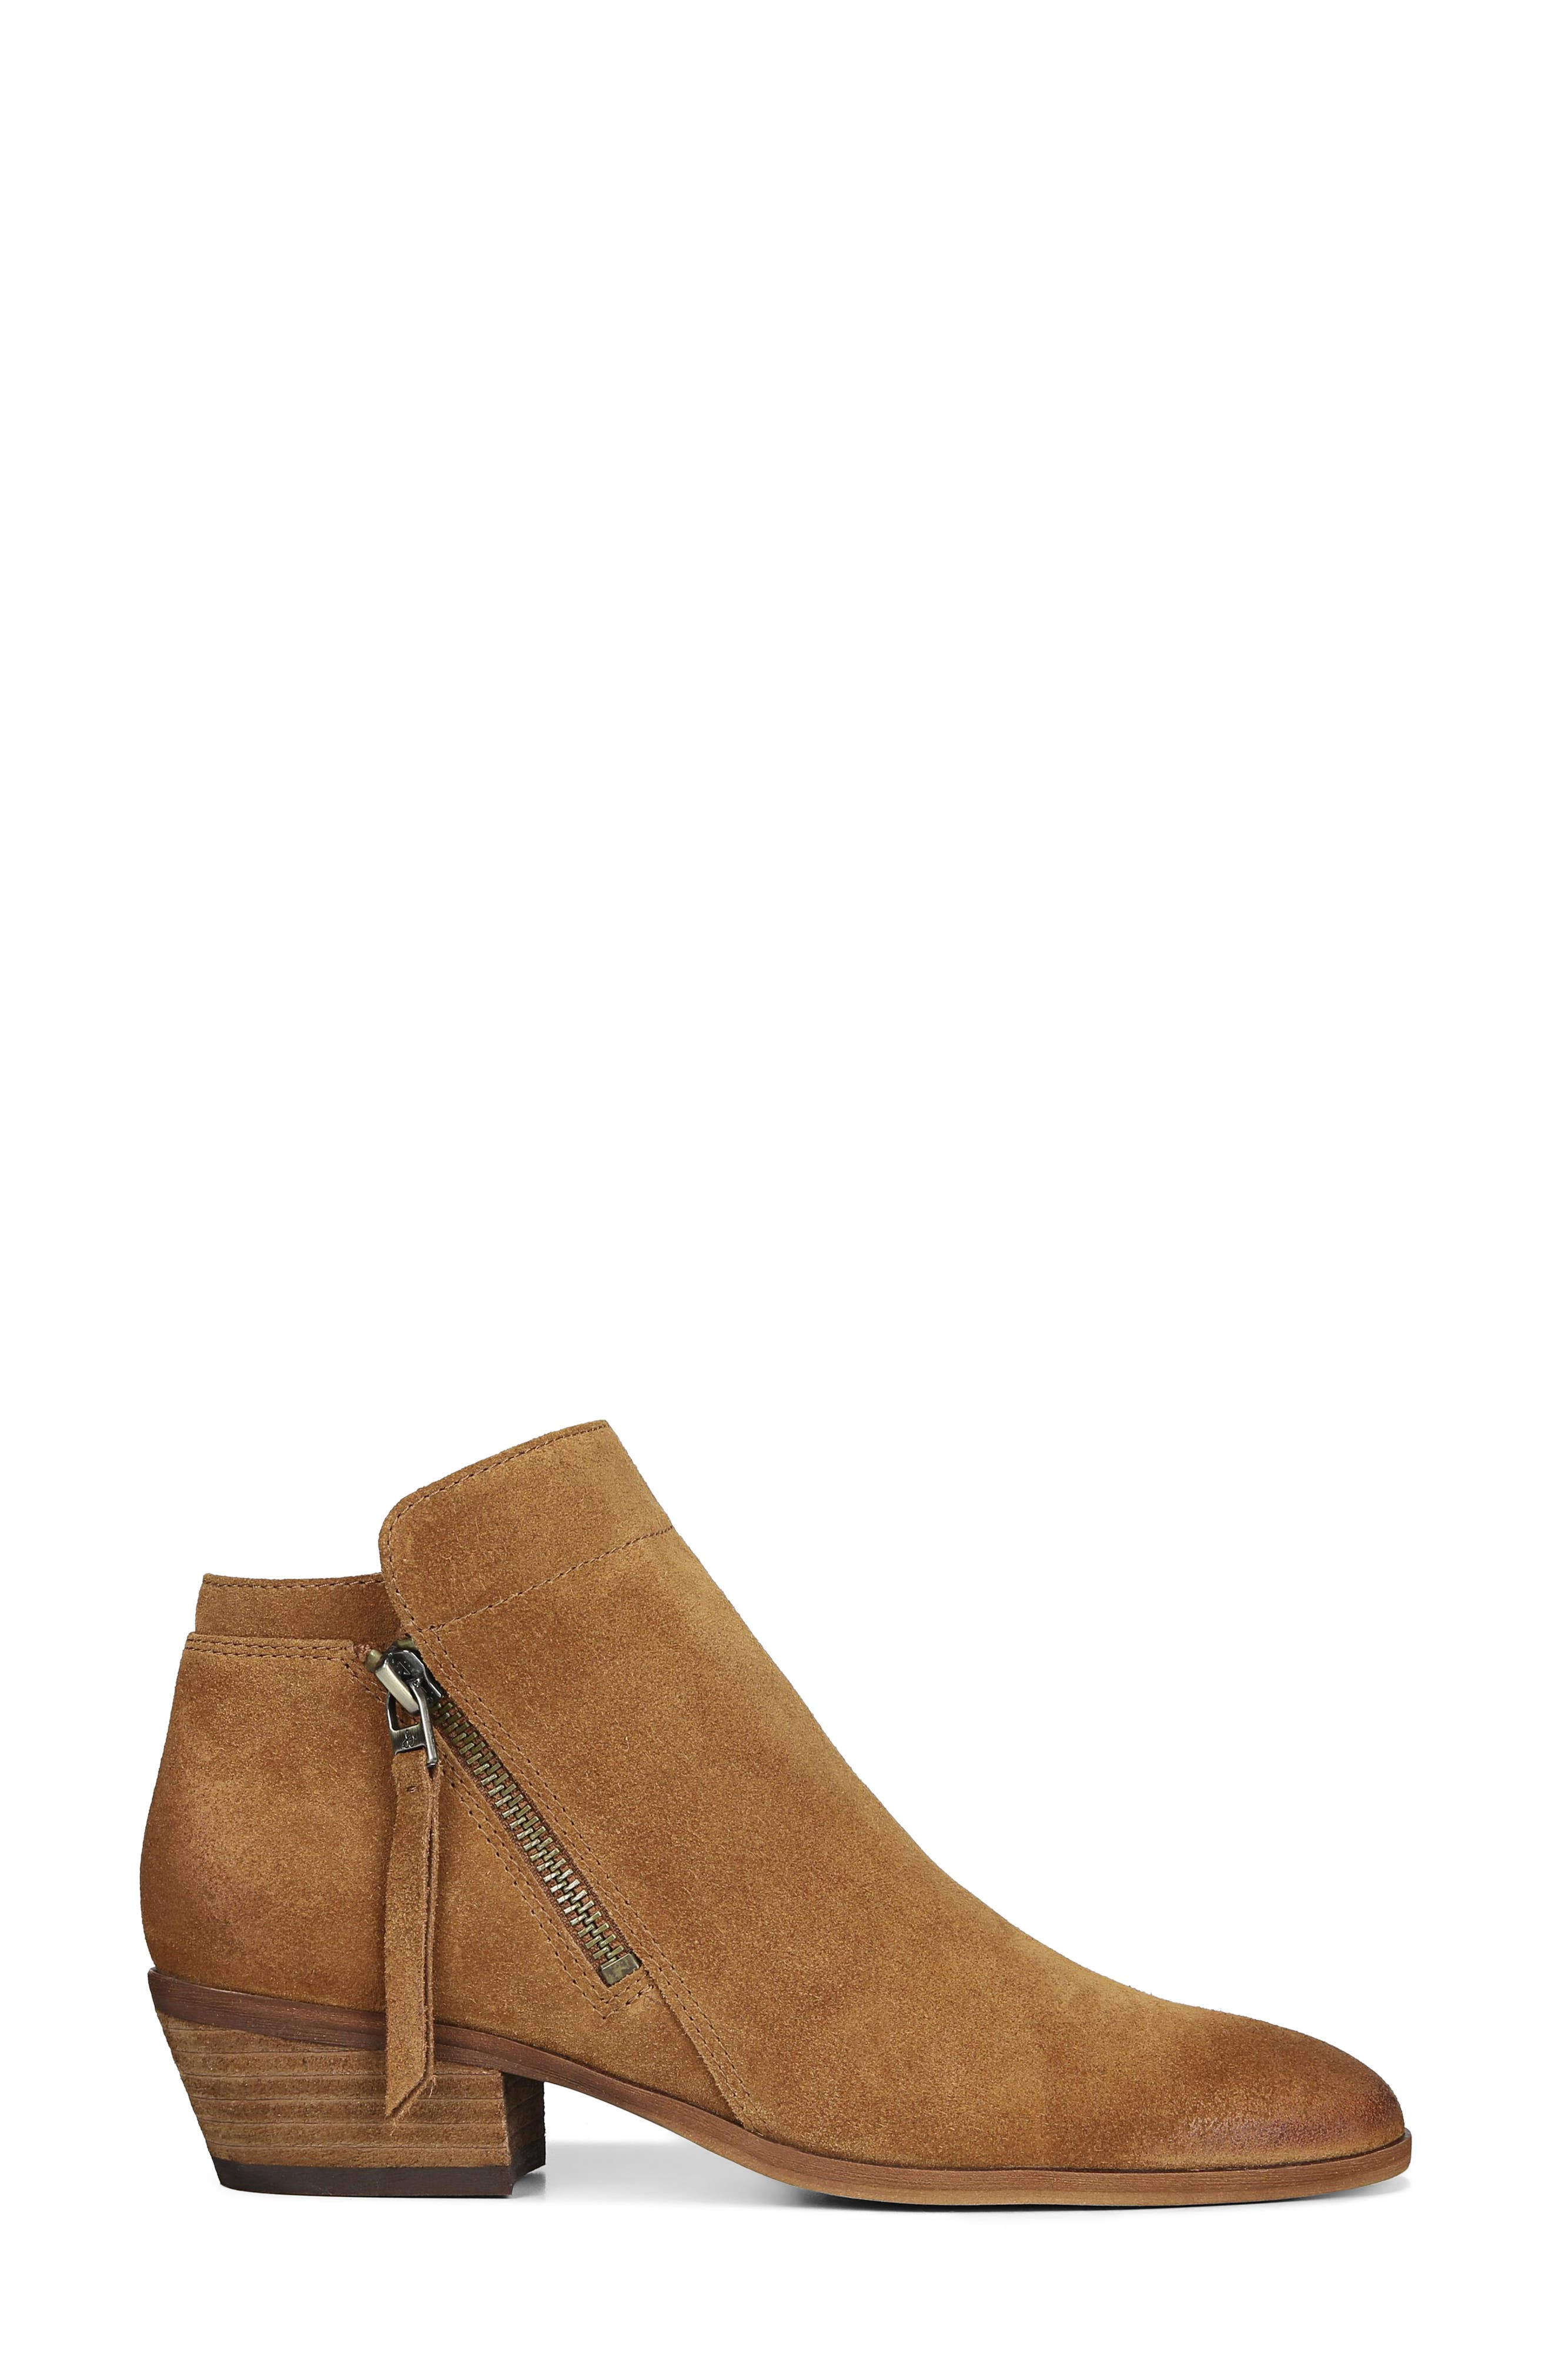 Packer Bootie,                             Alternate thumbnail 3, color,                             LUGGAGE SUEDE LEATHER